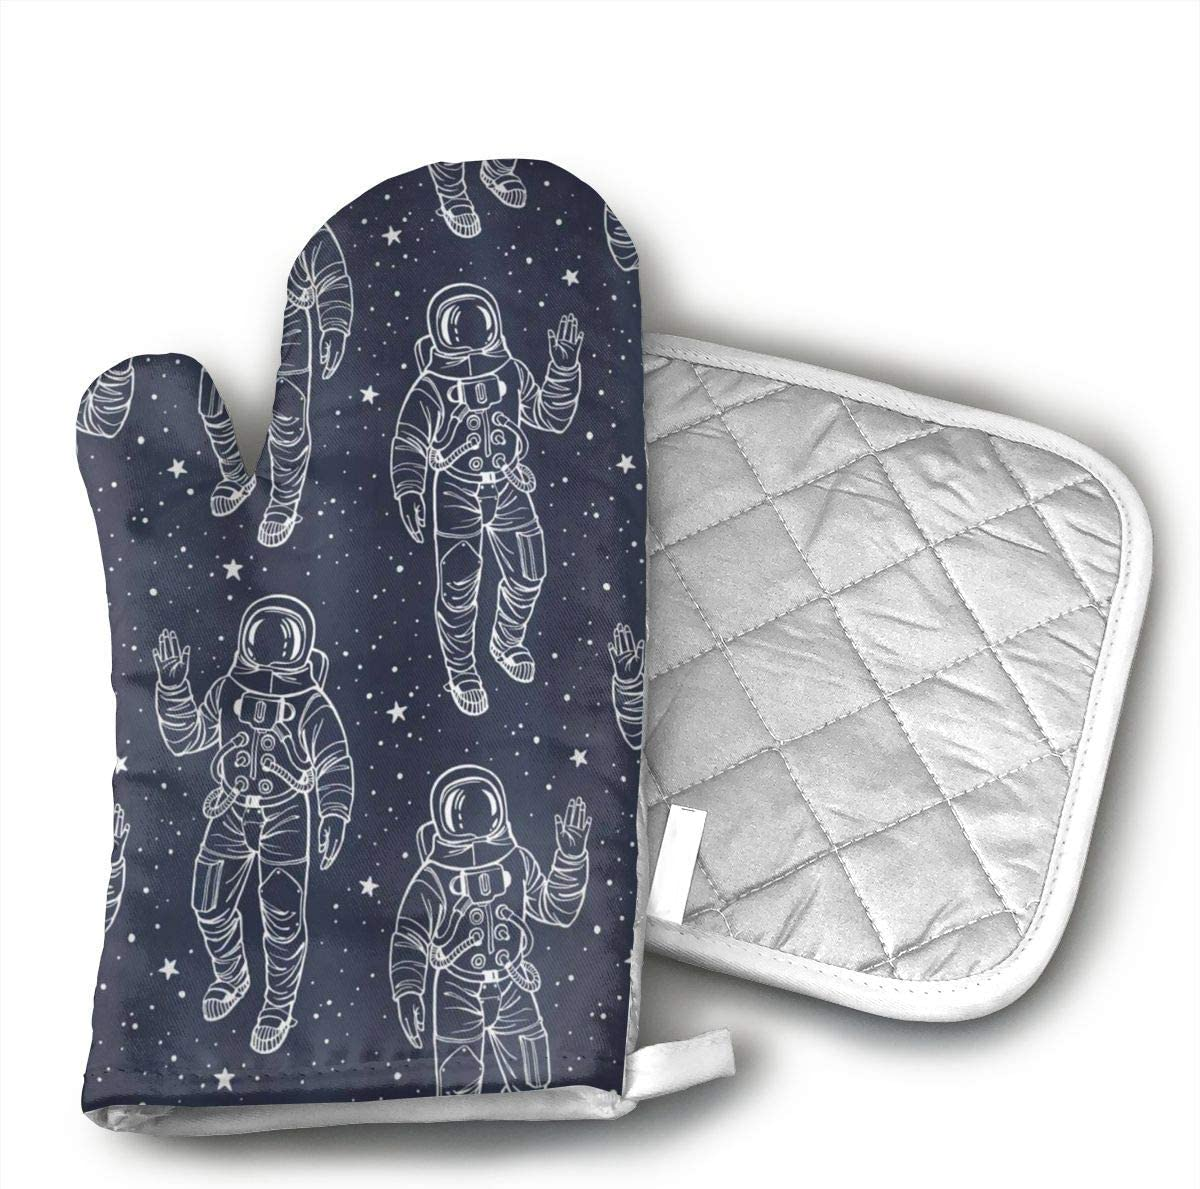 EROJfj Sky Starry Astronaut Pattern Oven Mitts and Potholders BBQ Gloves-Oven Mitts and Pot Holders Non-Slip Cooking Gloves for Cooking Baking Grilling